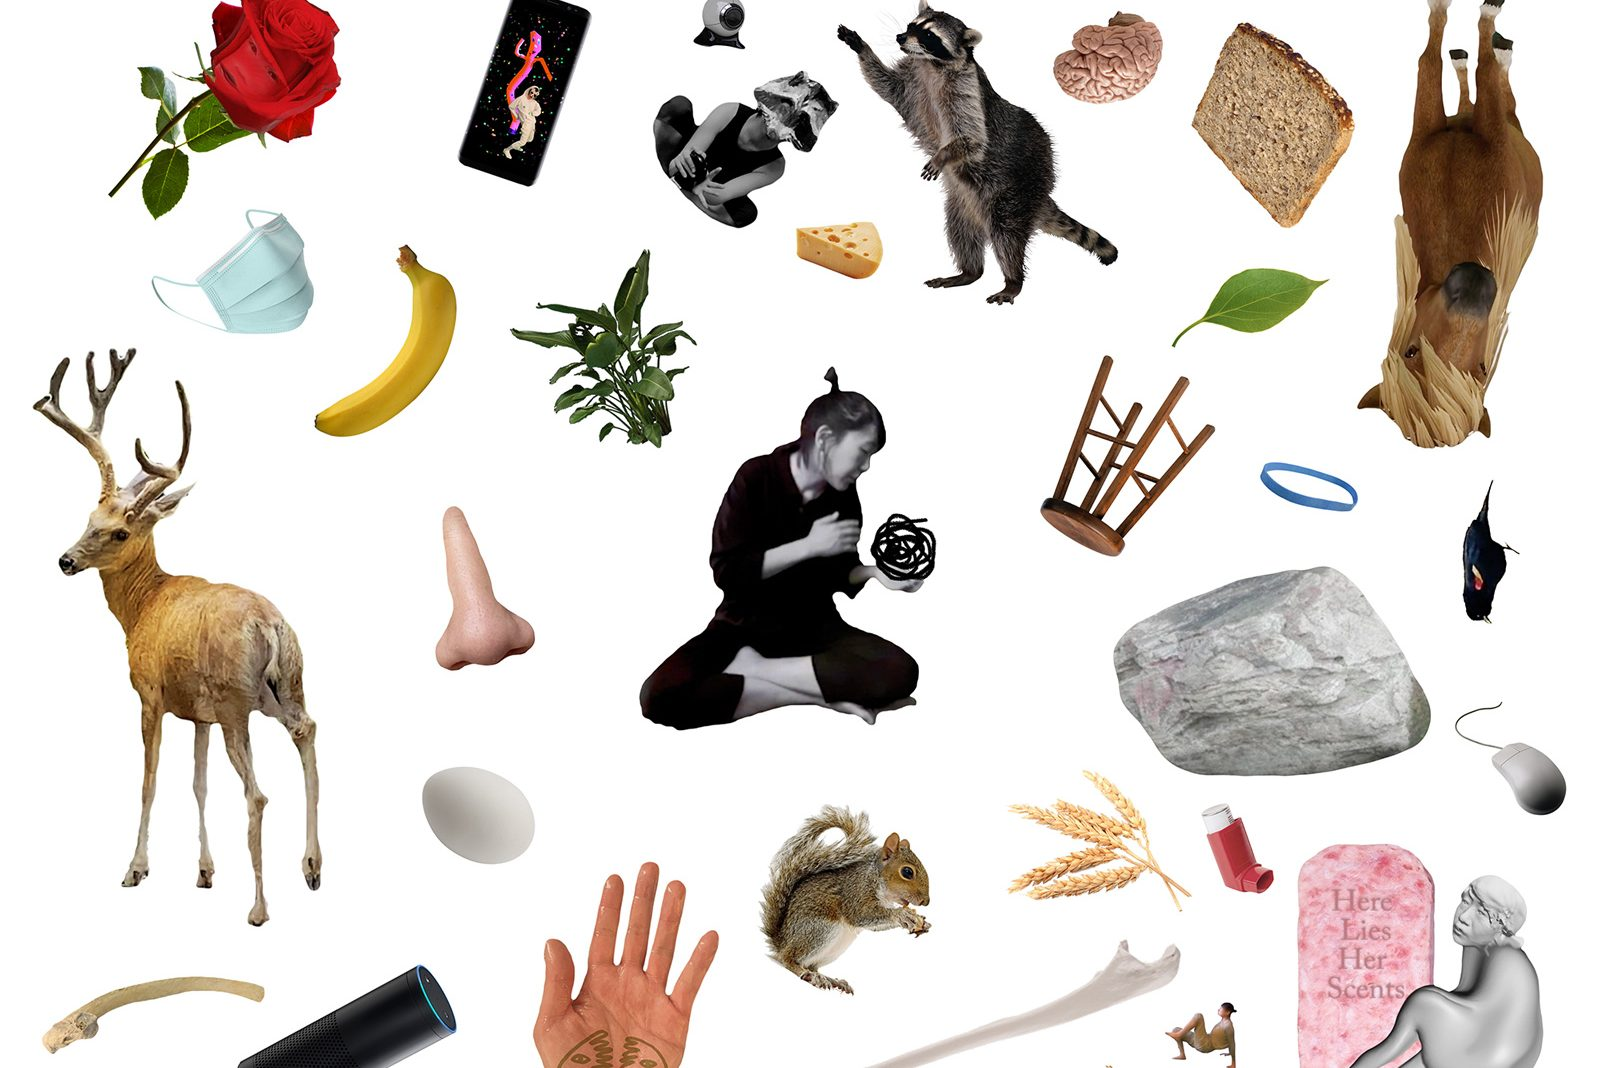 A jumble of digital images on a white background, including a red rose, a deer with large horns, a banana, a white person's nose, a raccoon, a wooden stool, a disposable face mask, and more. In the center there is a black and white photograph of a woman dressed in black sitting cross-legged, leaning to her left and holding a black, circular squiggle.